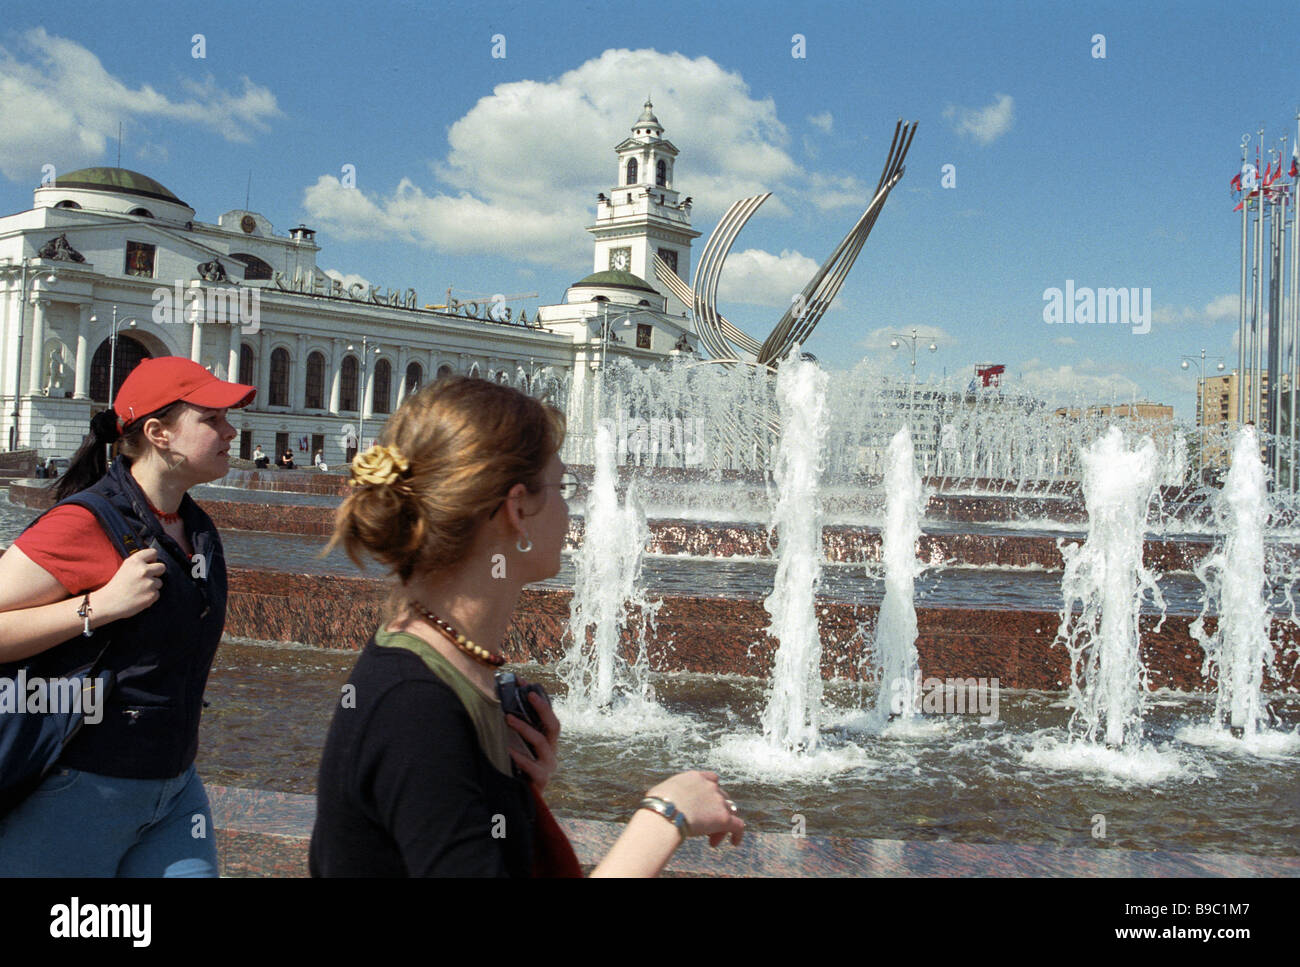 The Abduction of Europe fountain by Belgian sculptor Oliver Strebel at the Kievsky railway terminal - Stock Image